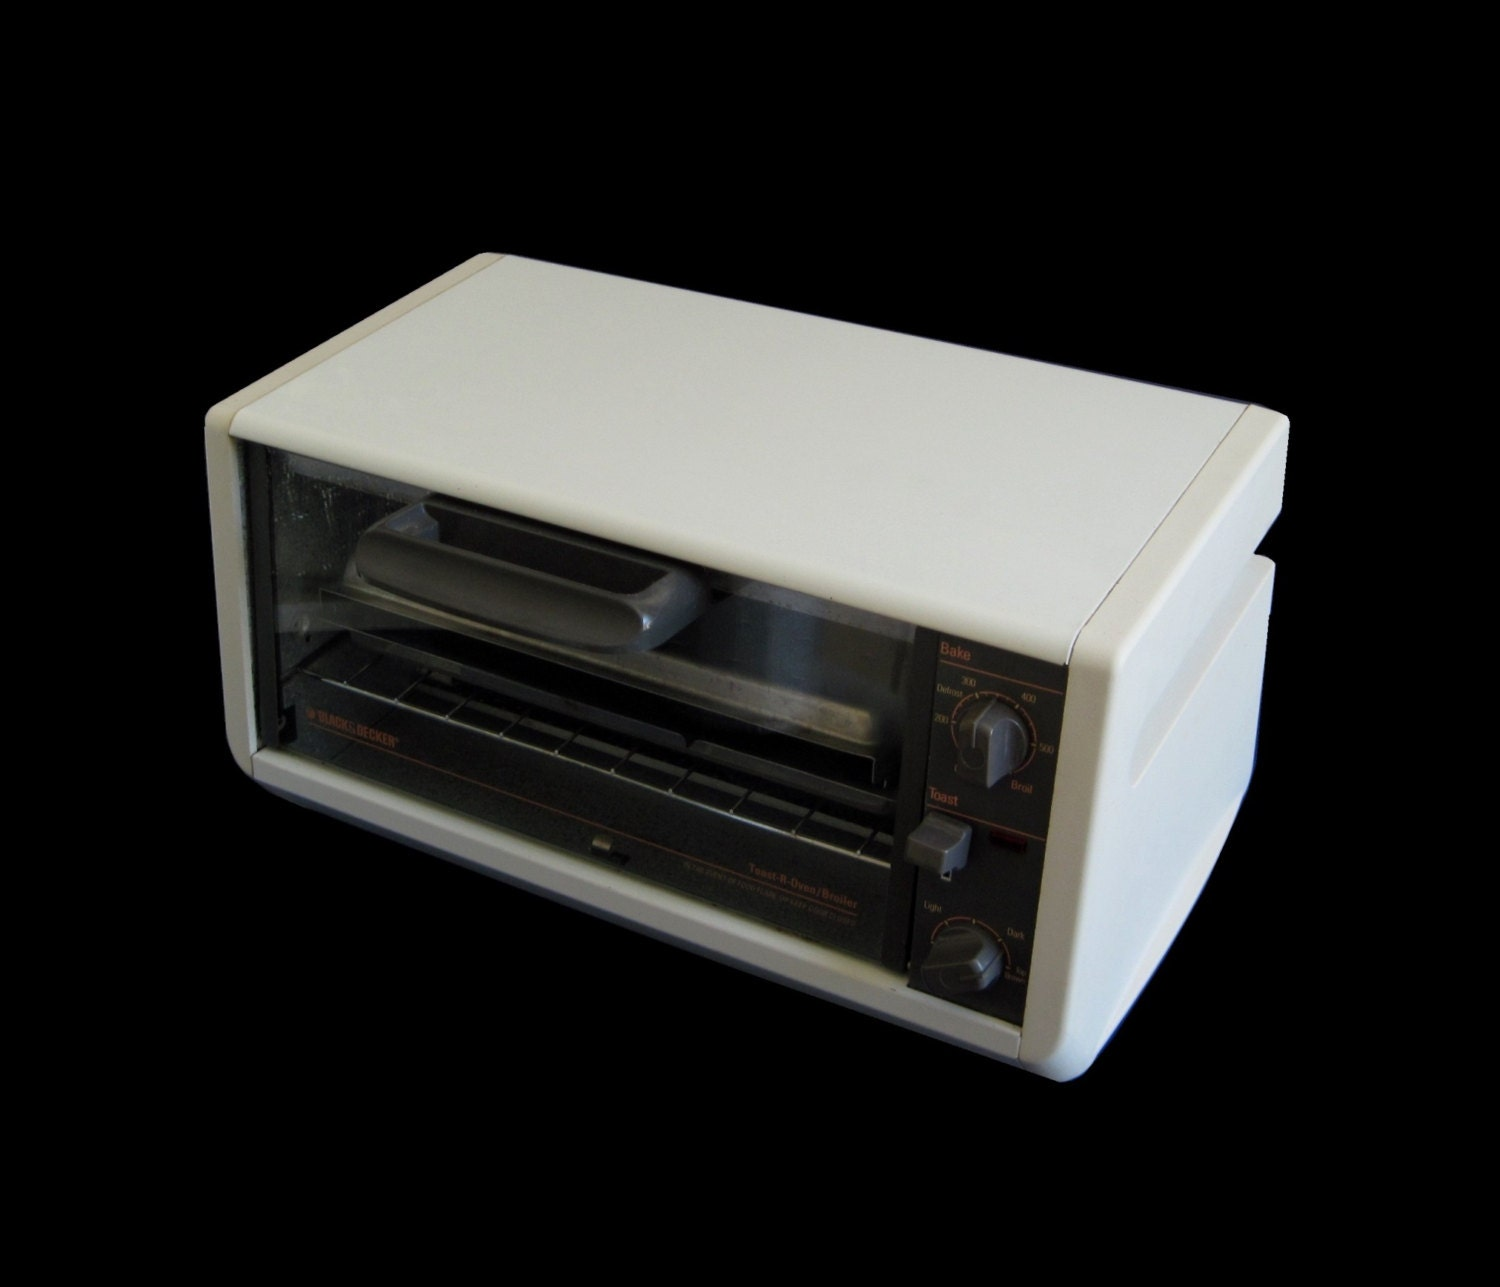 Under Counter Microwave For Easier Works: Black & Decker Spacemaker Toaster Oven TRO410 TY2 Under